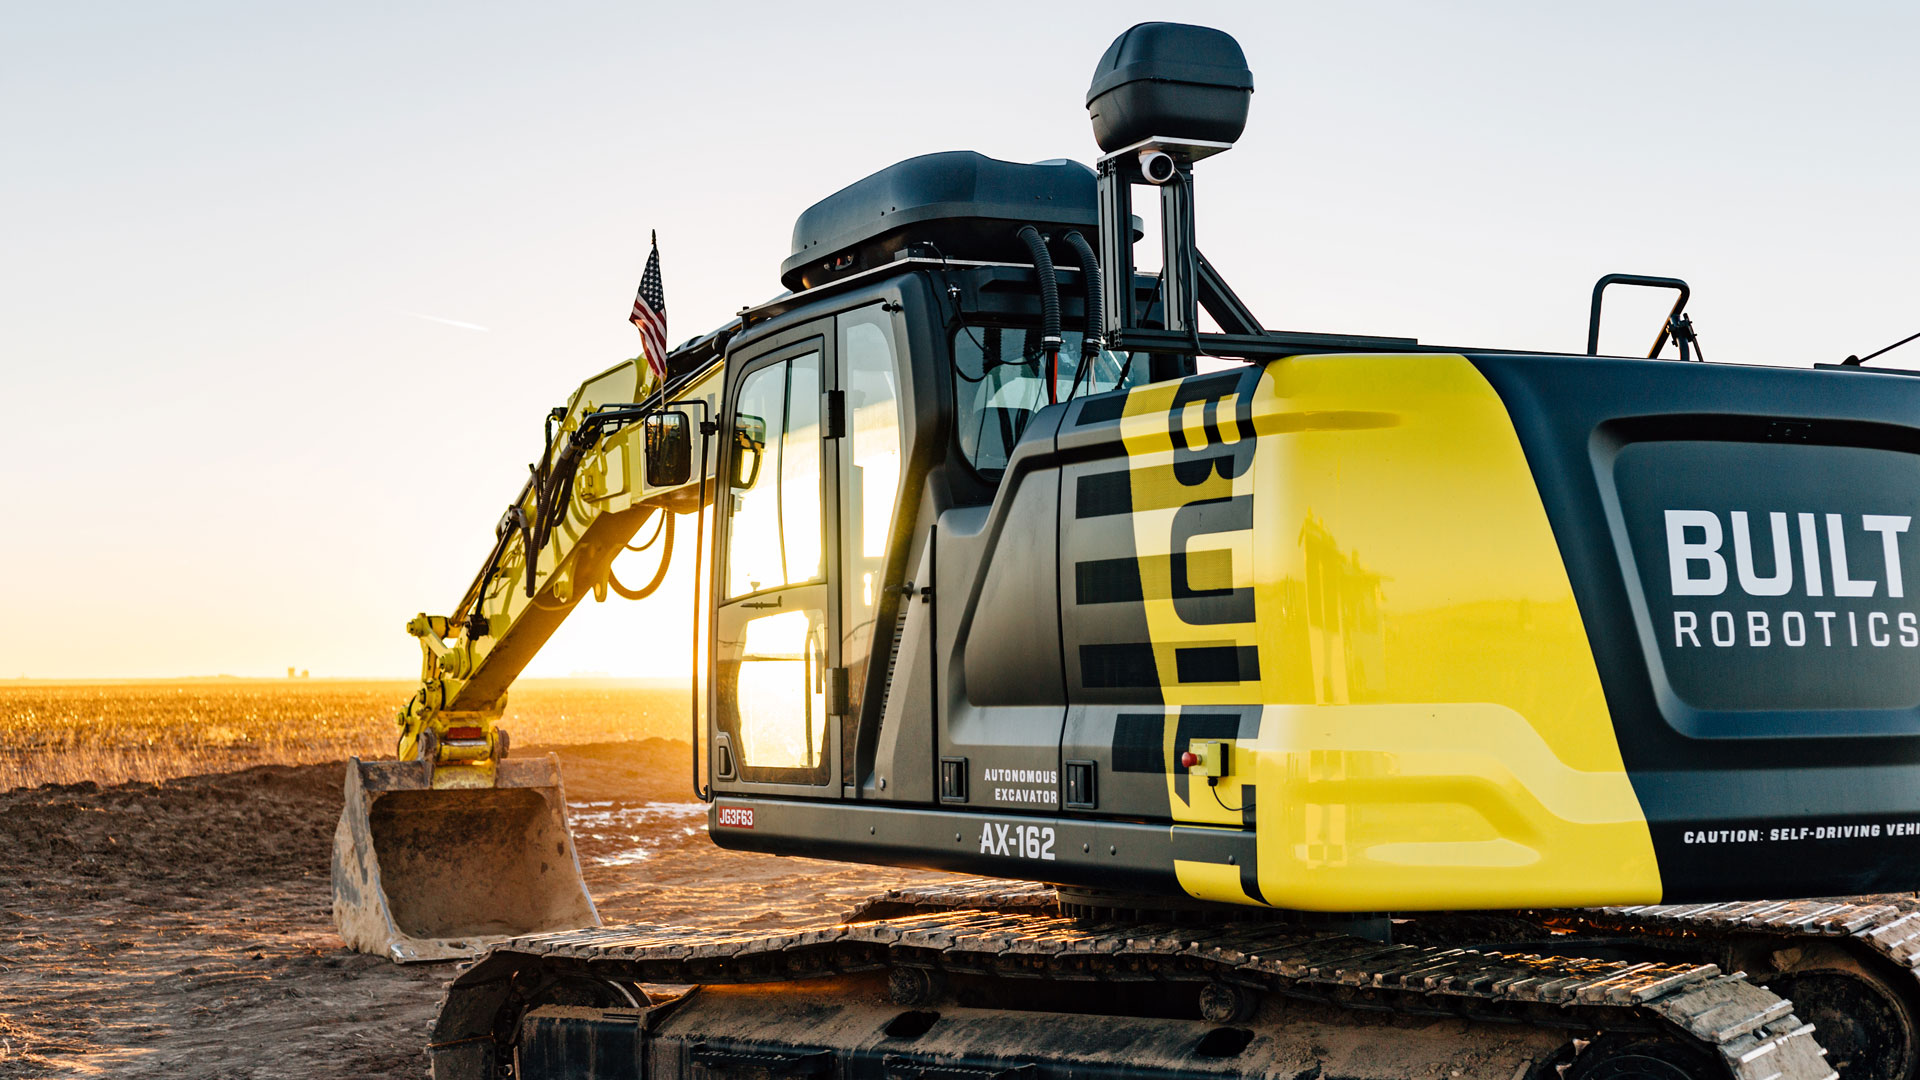 Self-Driving Excavators Hit the Market